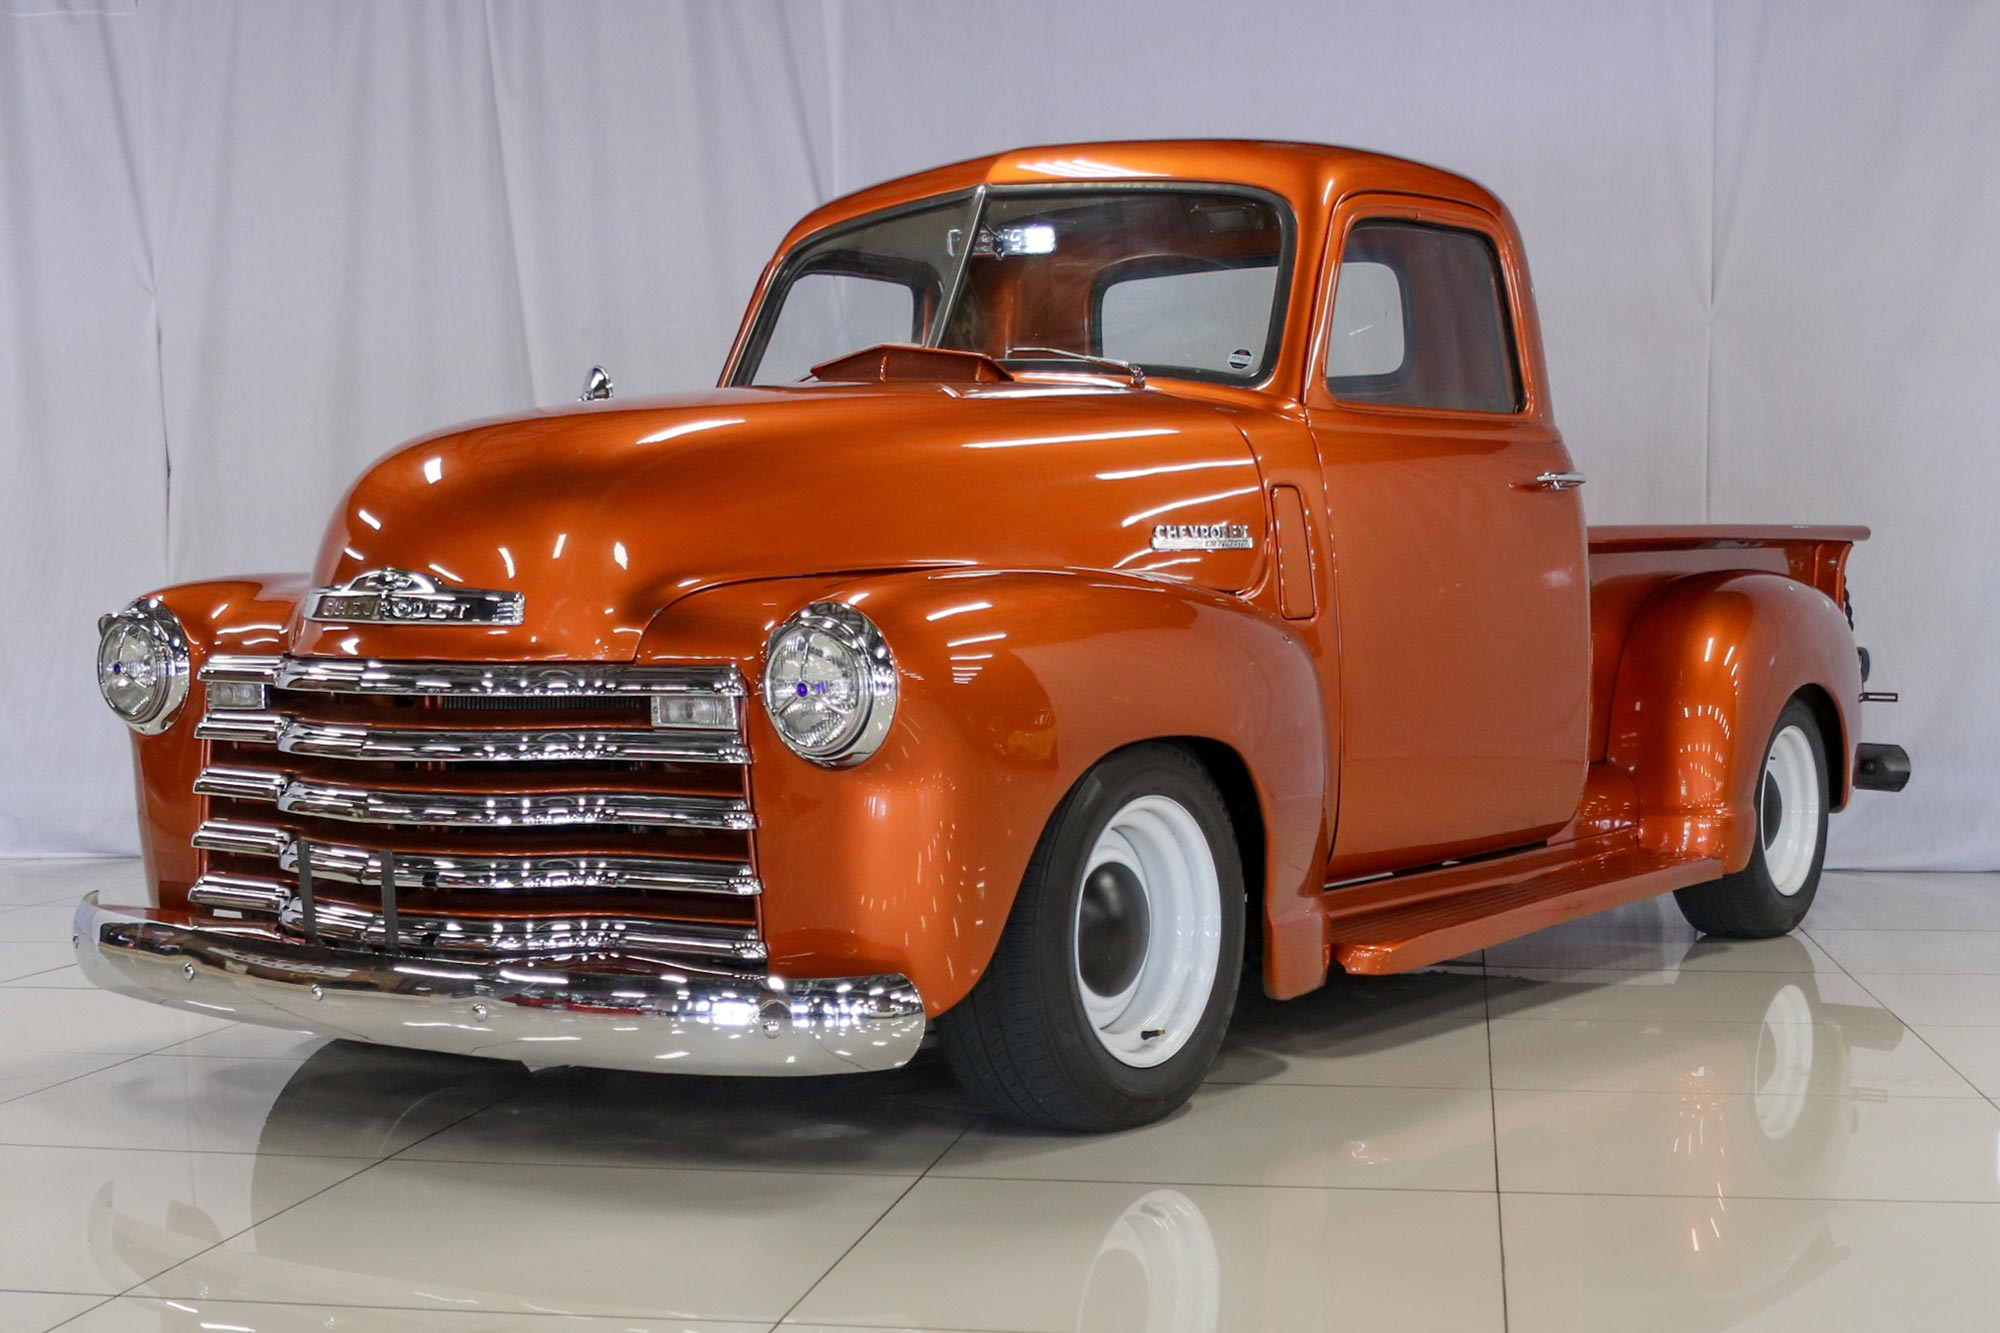 1948 Chevrolet Pickup Truck View By Appointment Creative Rides 1954 Pick Up